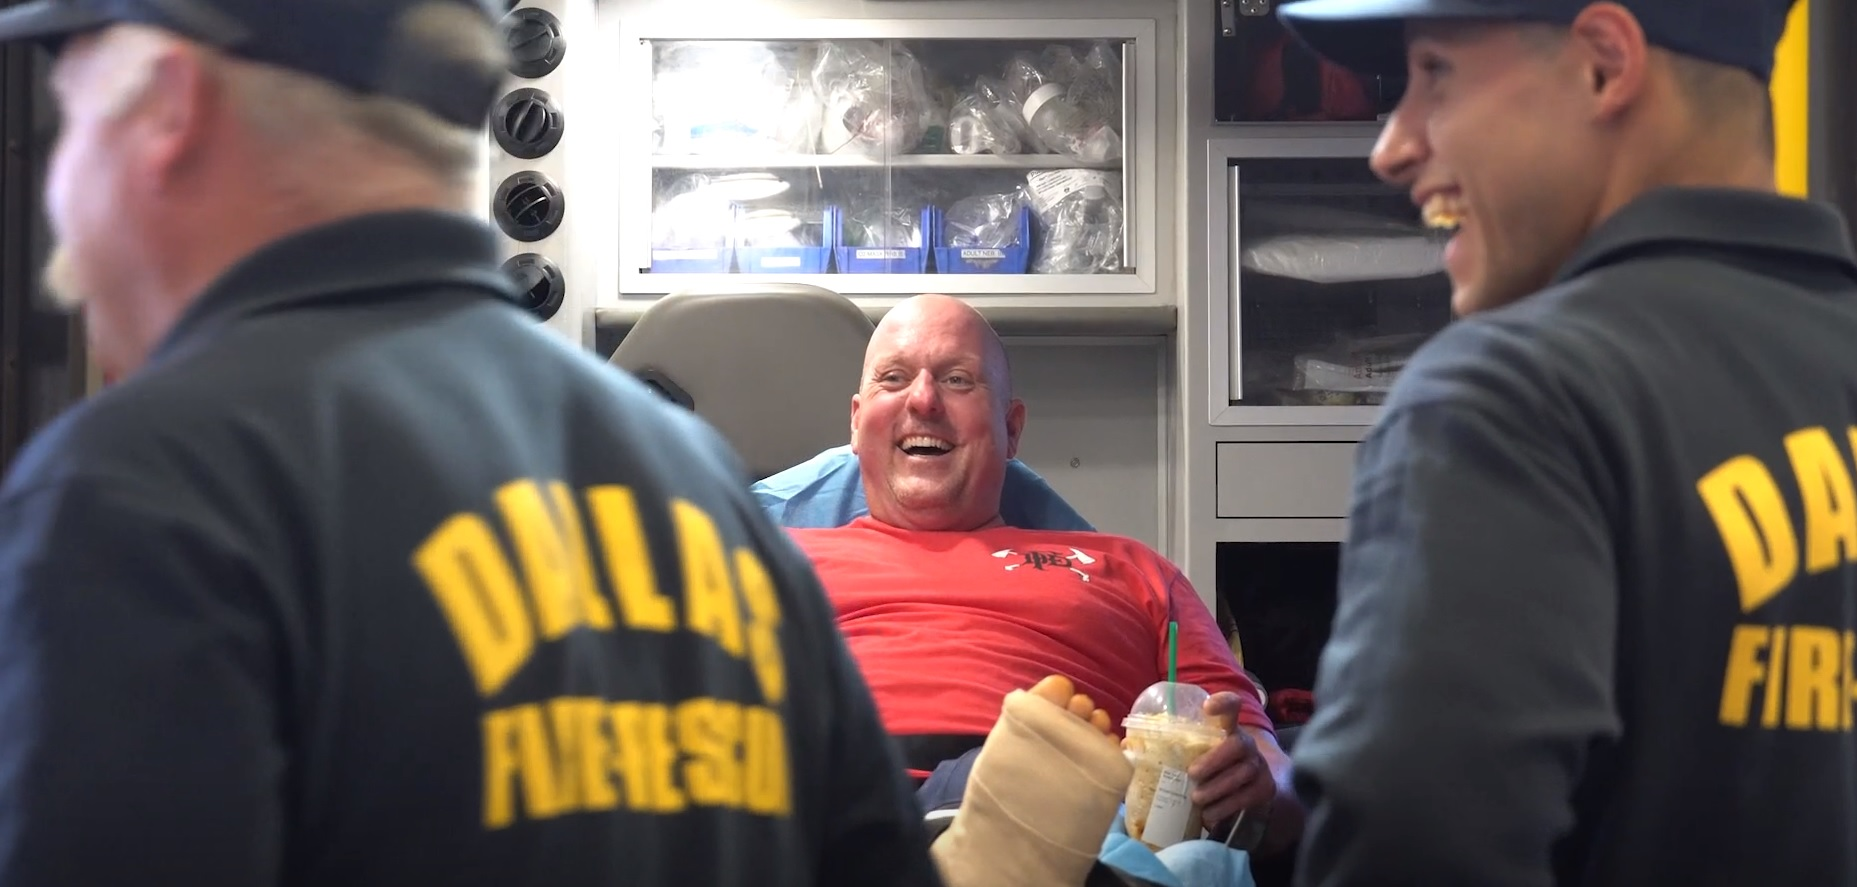 Last of 3 Dallas Firefighters Injured in Apartment Blast Released from Hospital [WATCH]